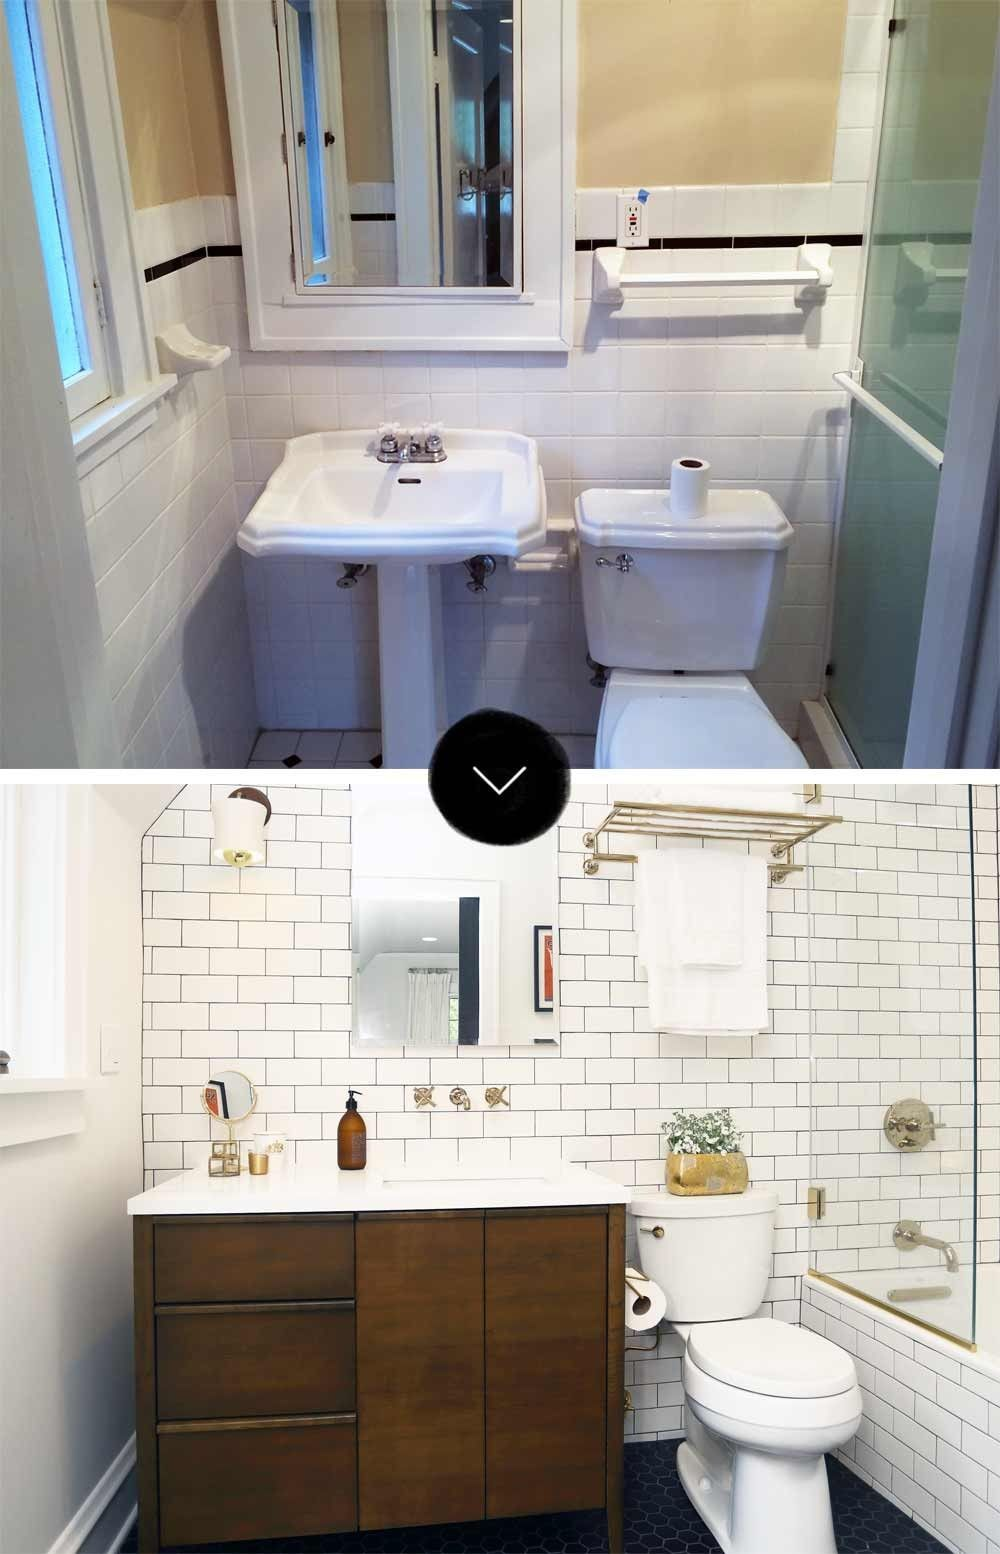 Before & After: A Light and Bright Tudor Remodel | Design*Sponge ...